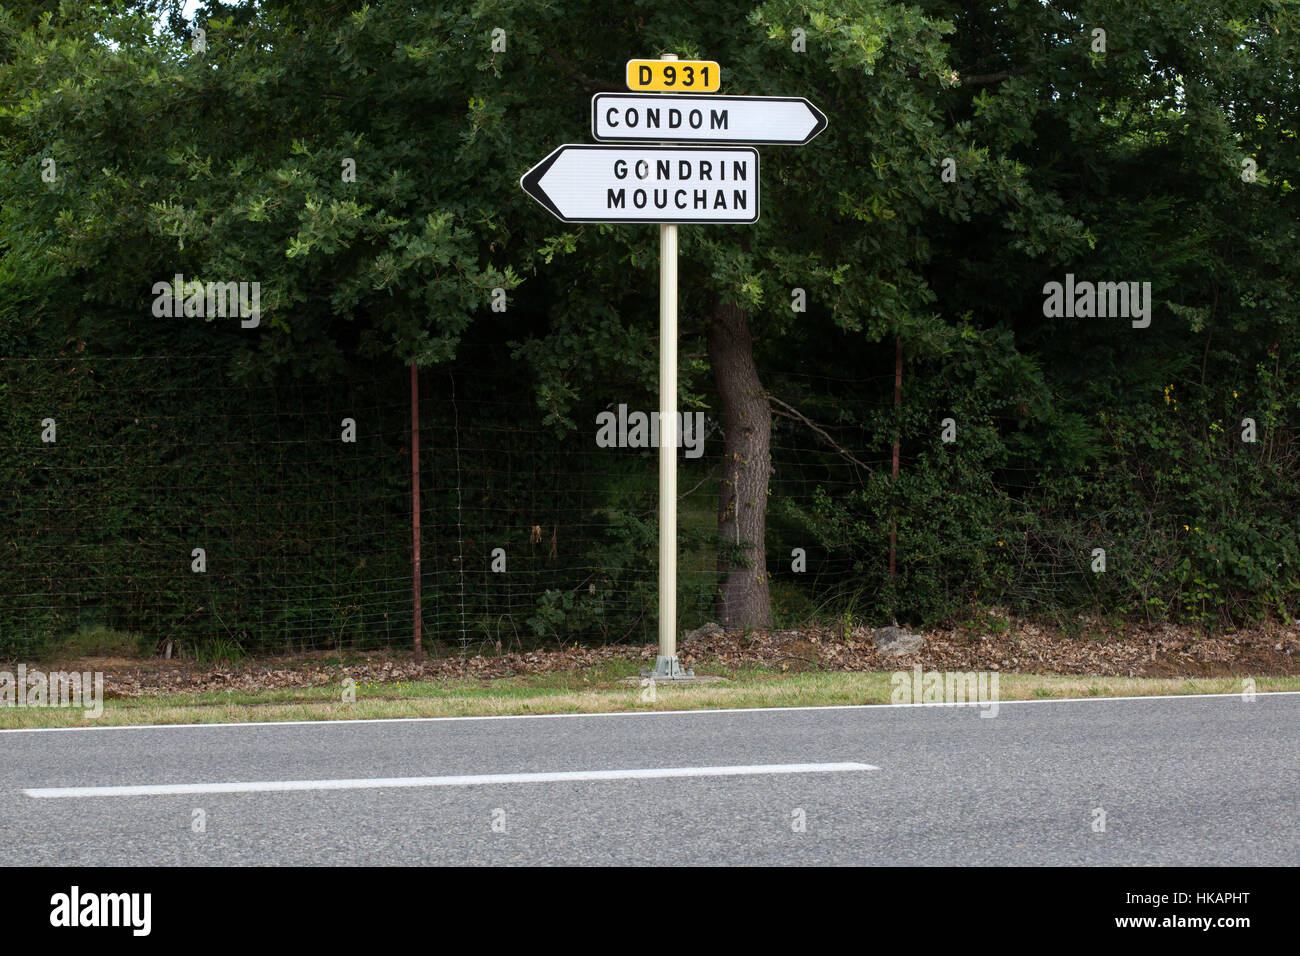 Direction traffic sign to Condom and to Gondrin and Mouchan next to the town of Condom in Gers, France. - Stock Image